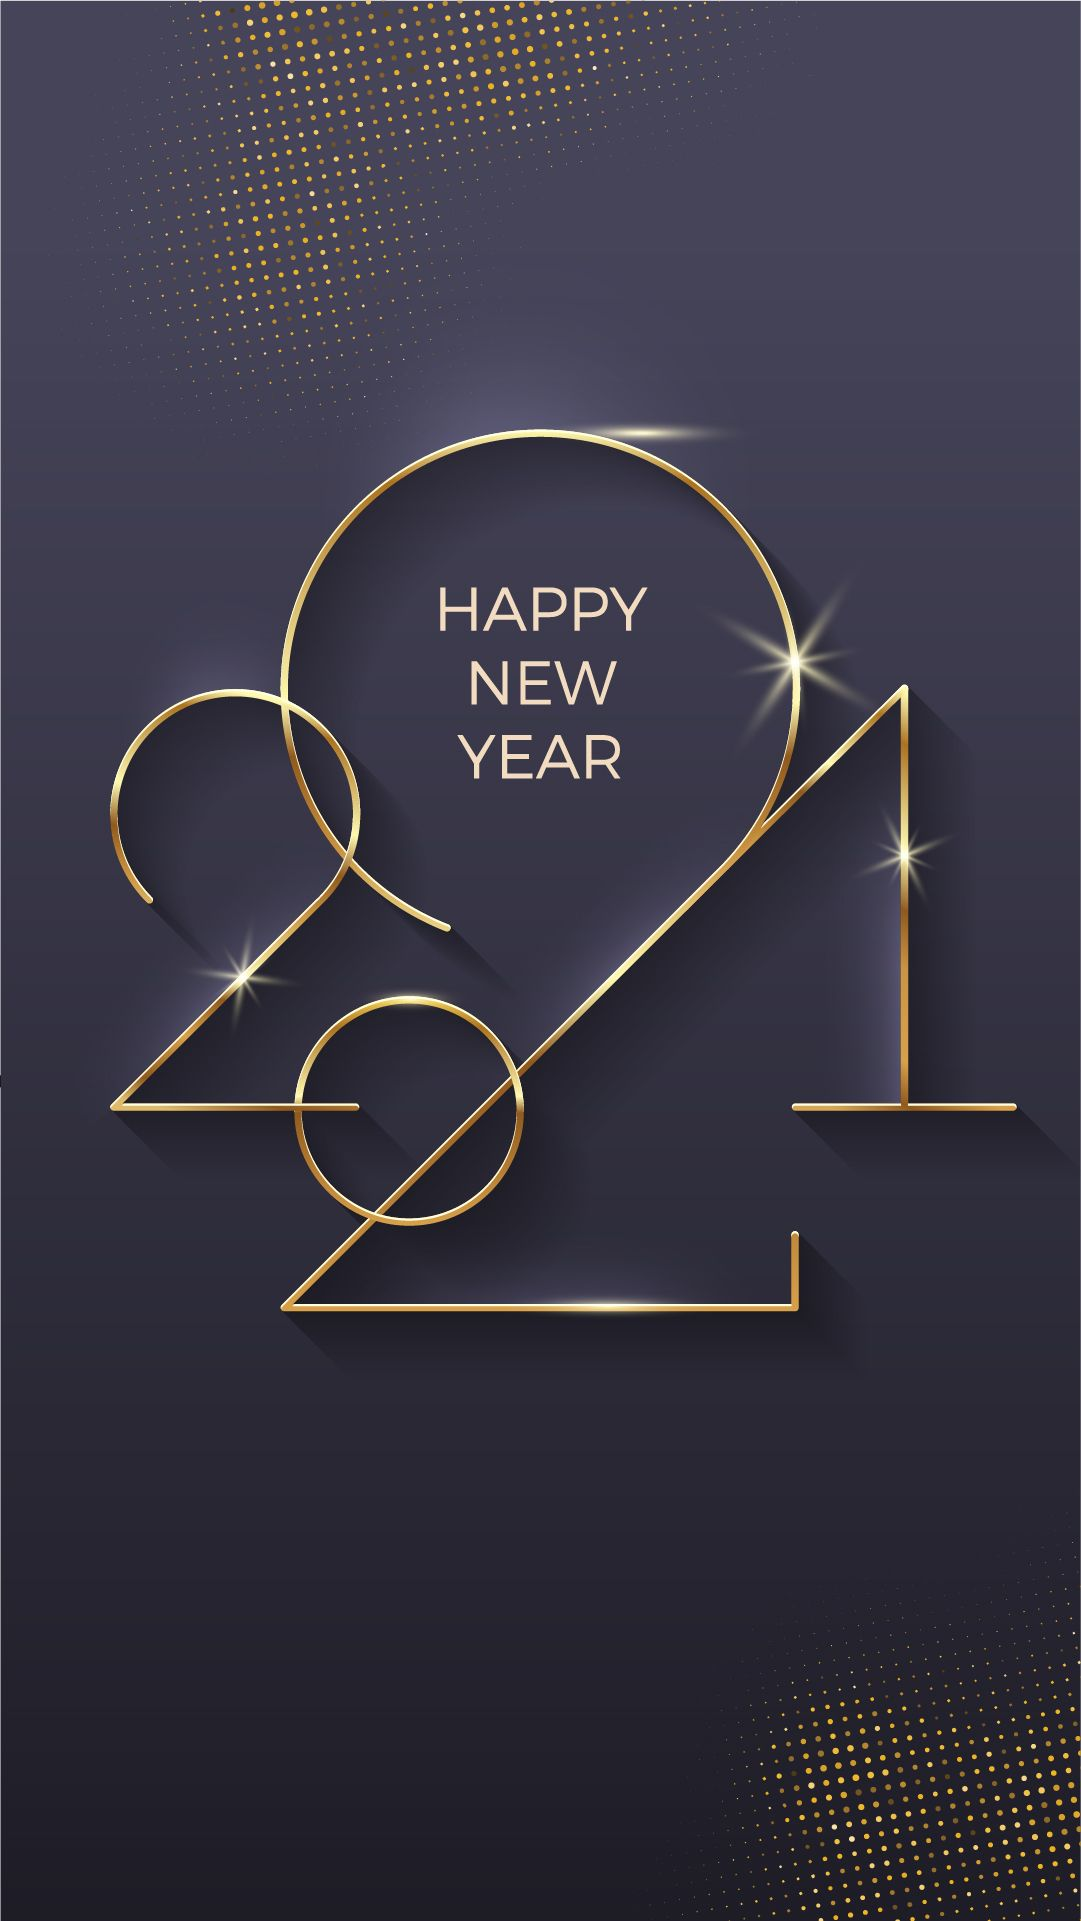 Happy New Year Coming Year New Year Eve New Year Party Resolution Day Wishes Count New Years Party Instagram Template Backgrounds For Instagram Stories